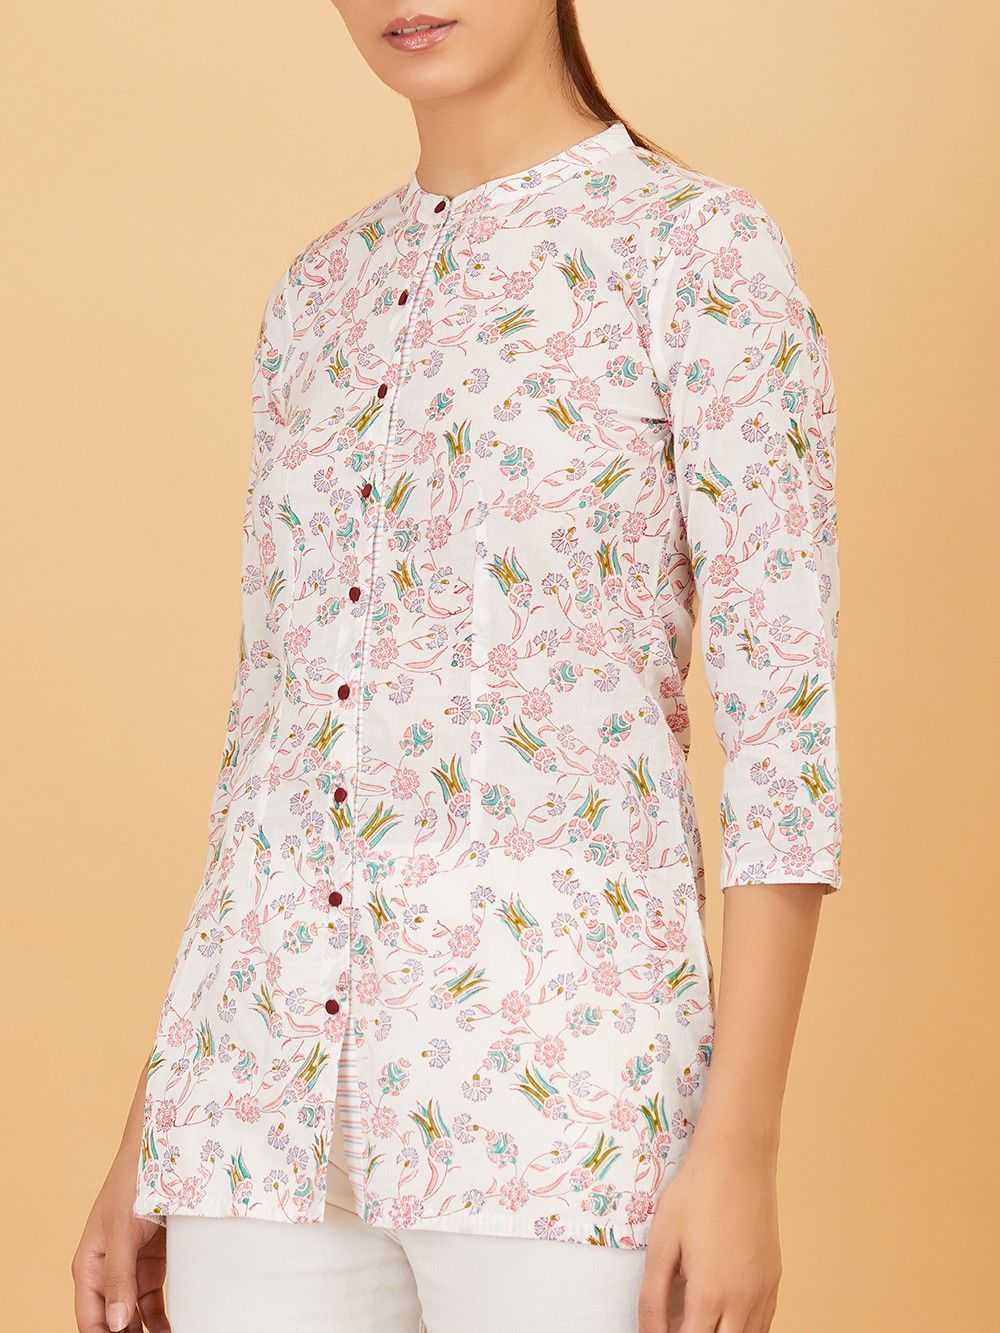 e8a6e419de Buy White Floral Hand Block Printed Cotton Shirt online at Theloom